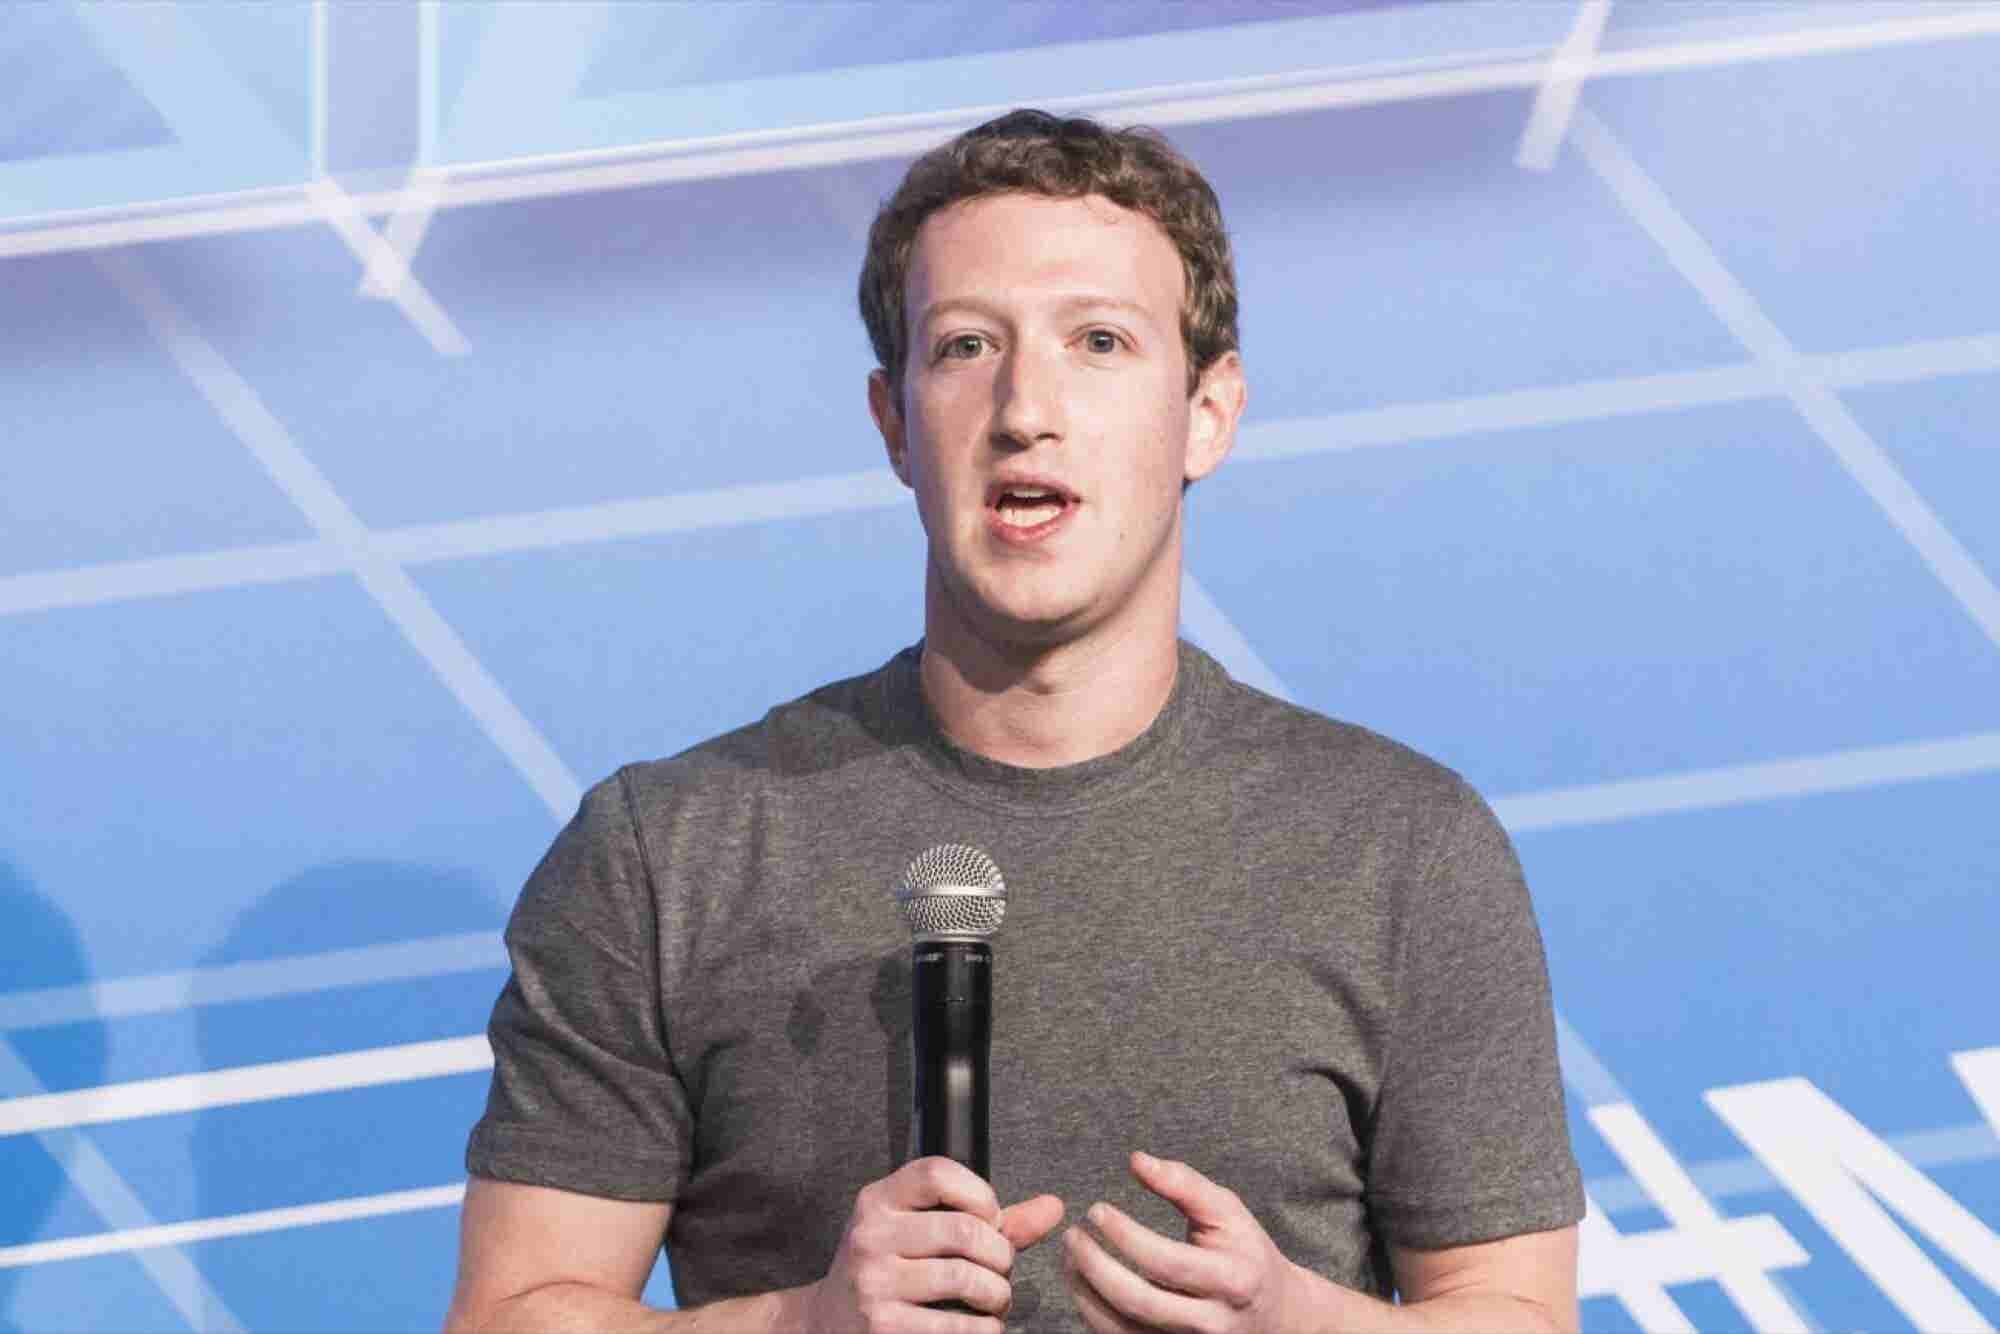 Facebook's Zuckerberg Discloses Steps to Fight Fake News